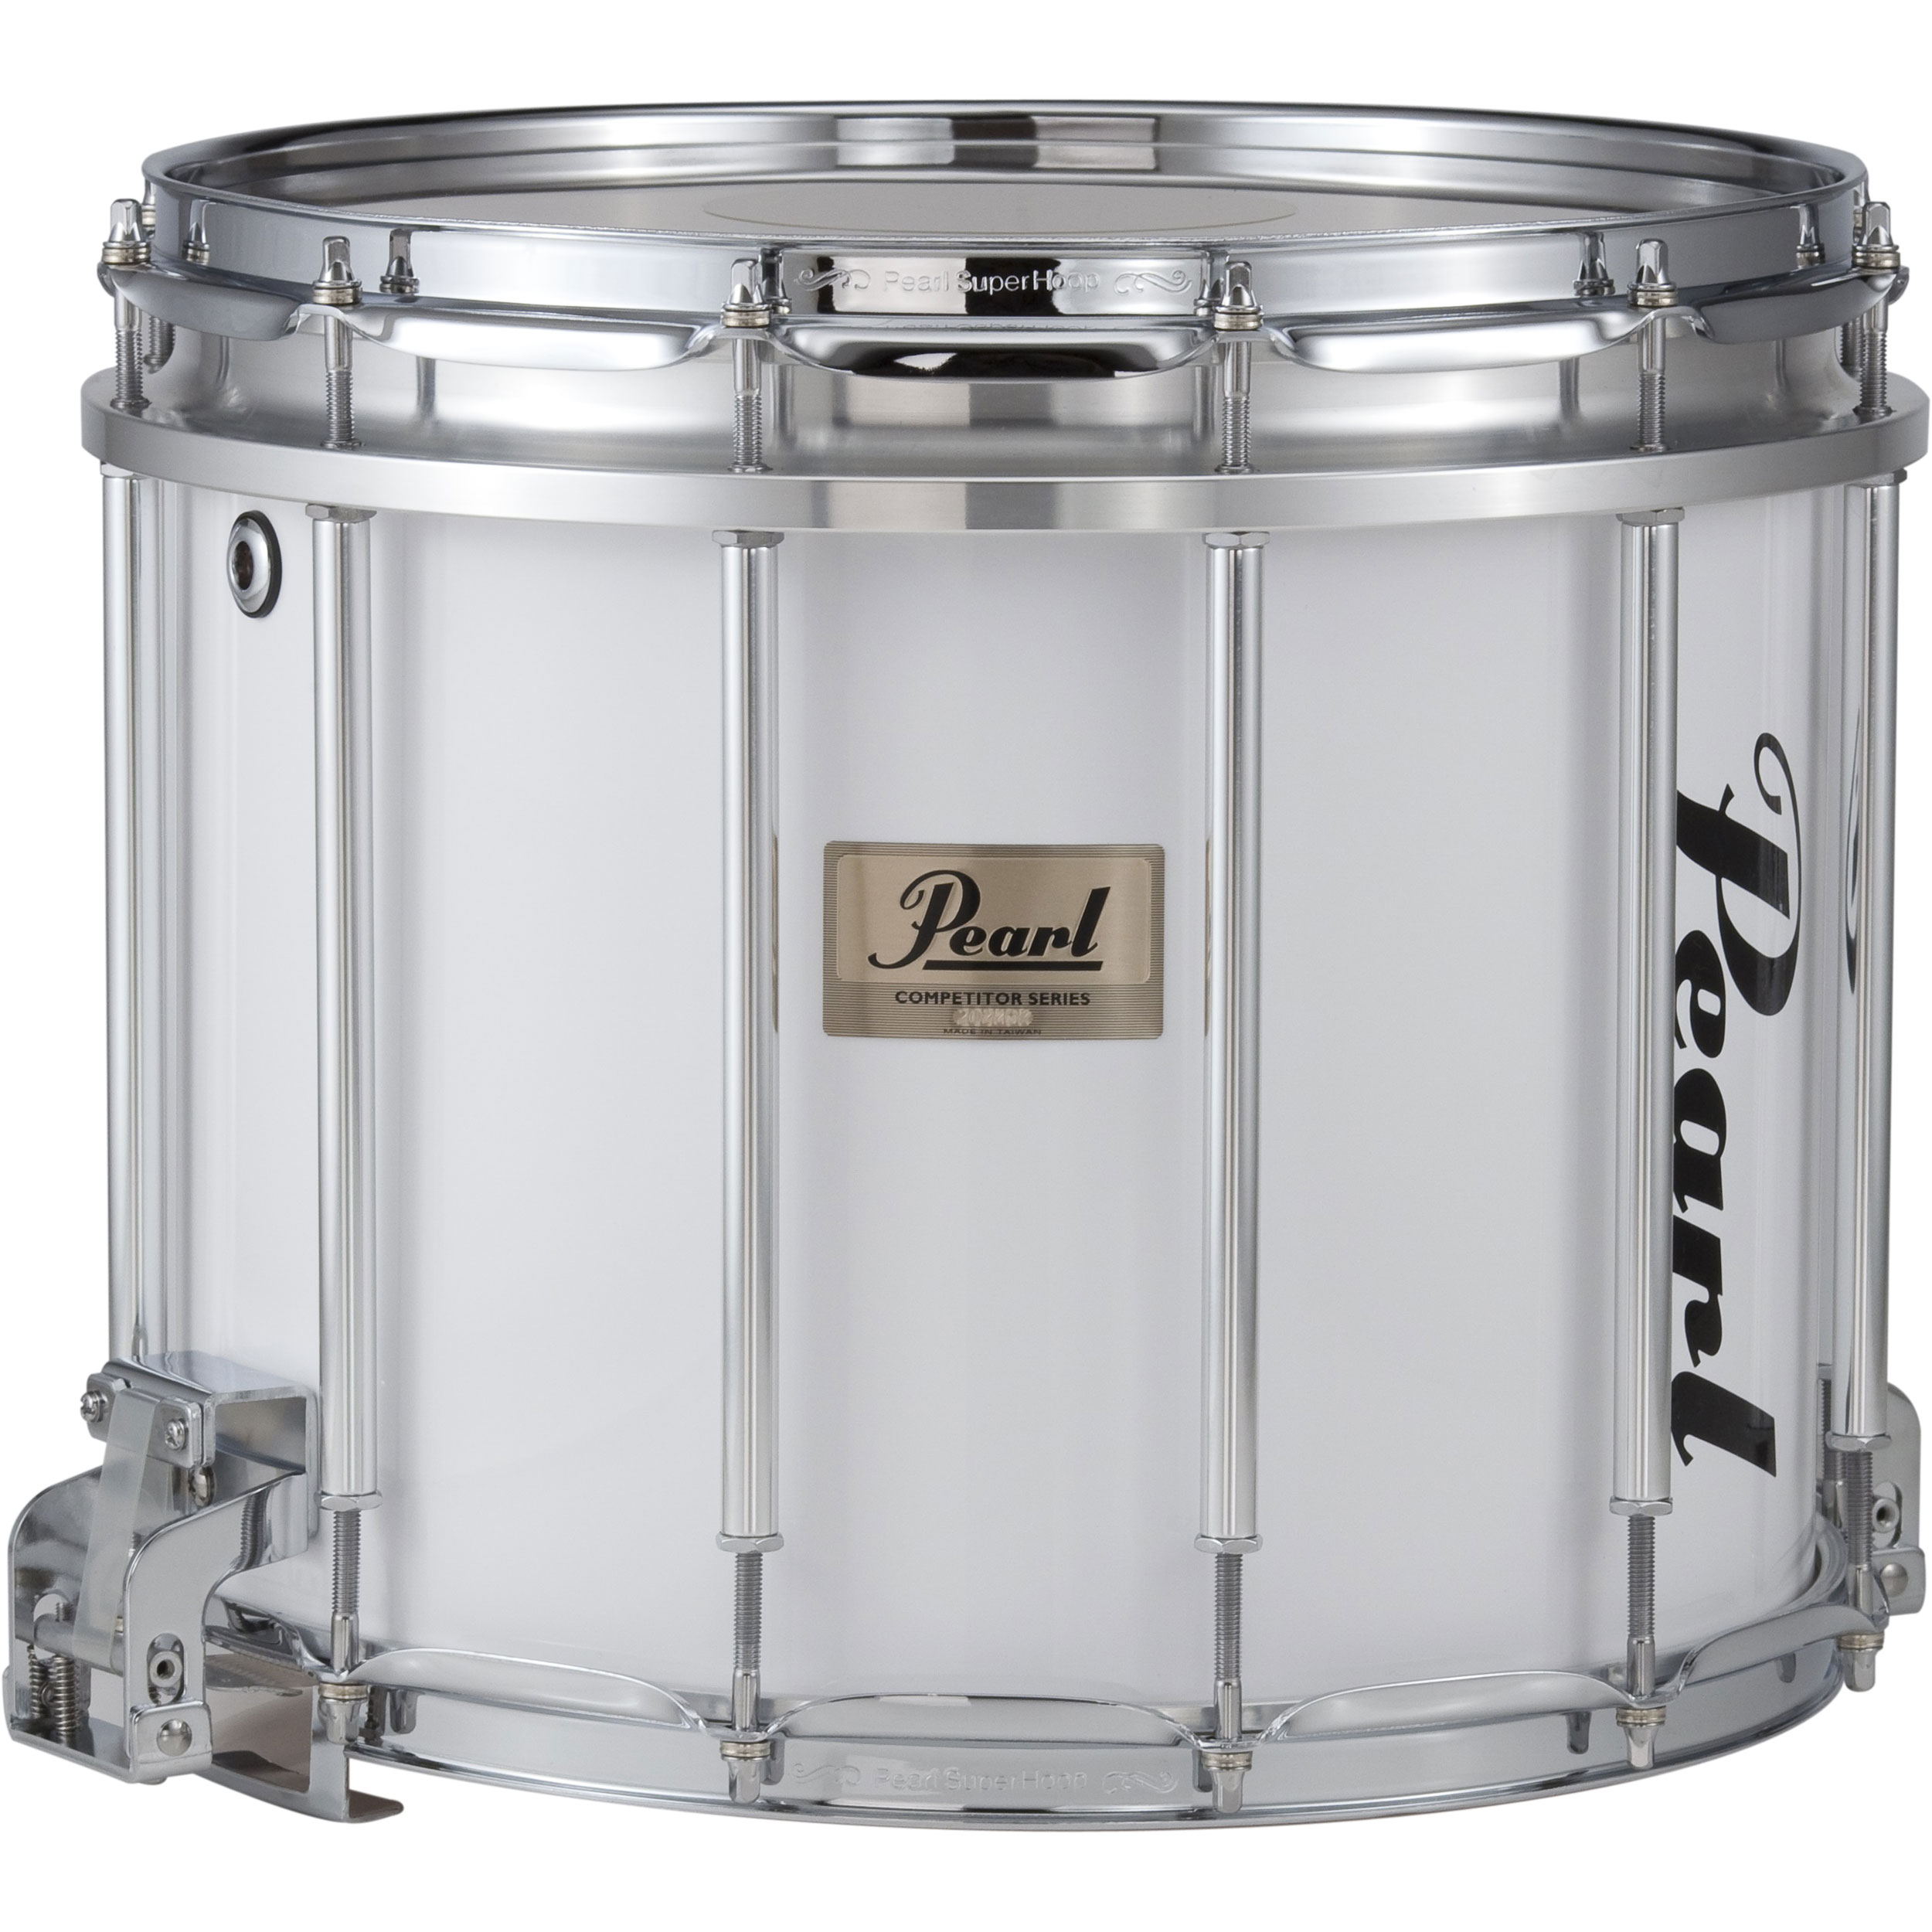 "Pearl 14"" (Diameter) x 12"" (Deep) Competitor Marching Snare Drum"